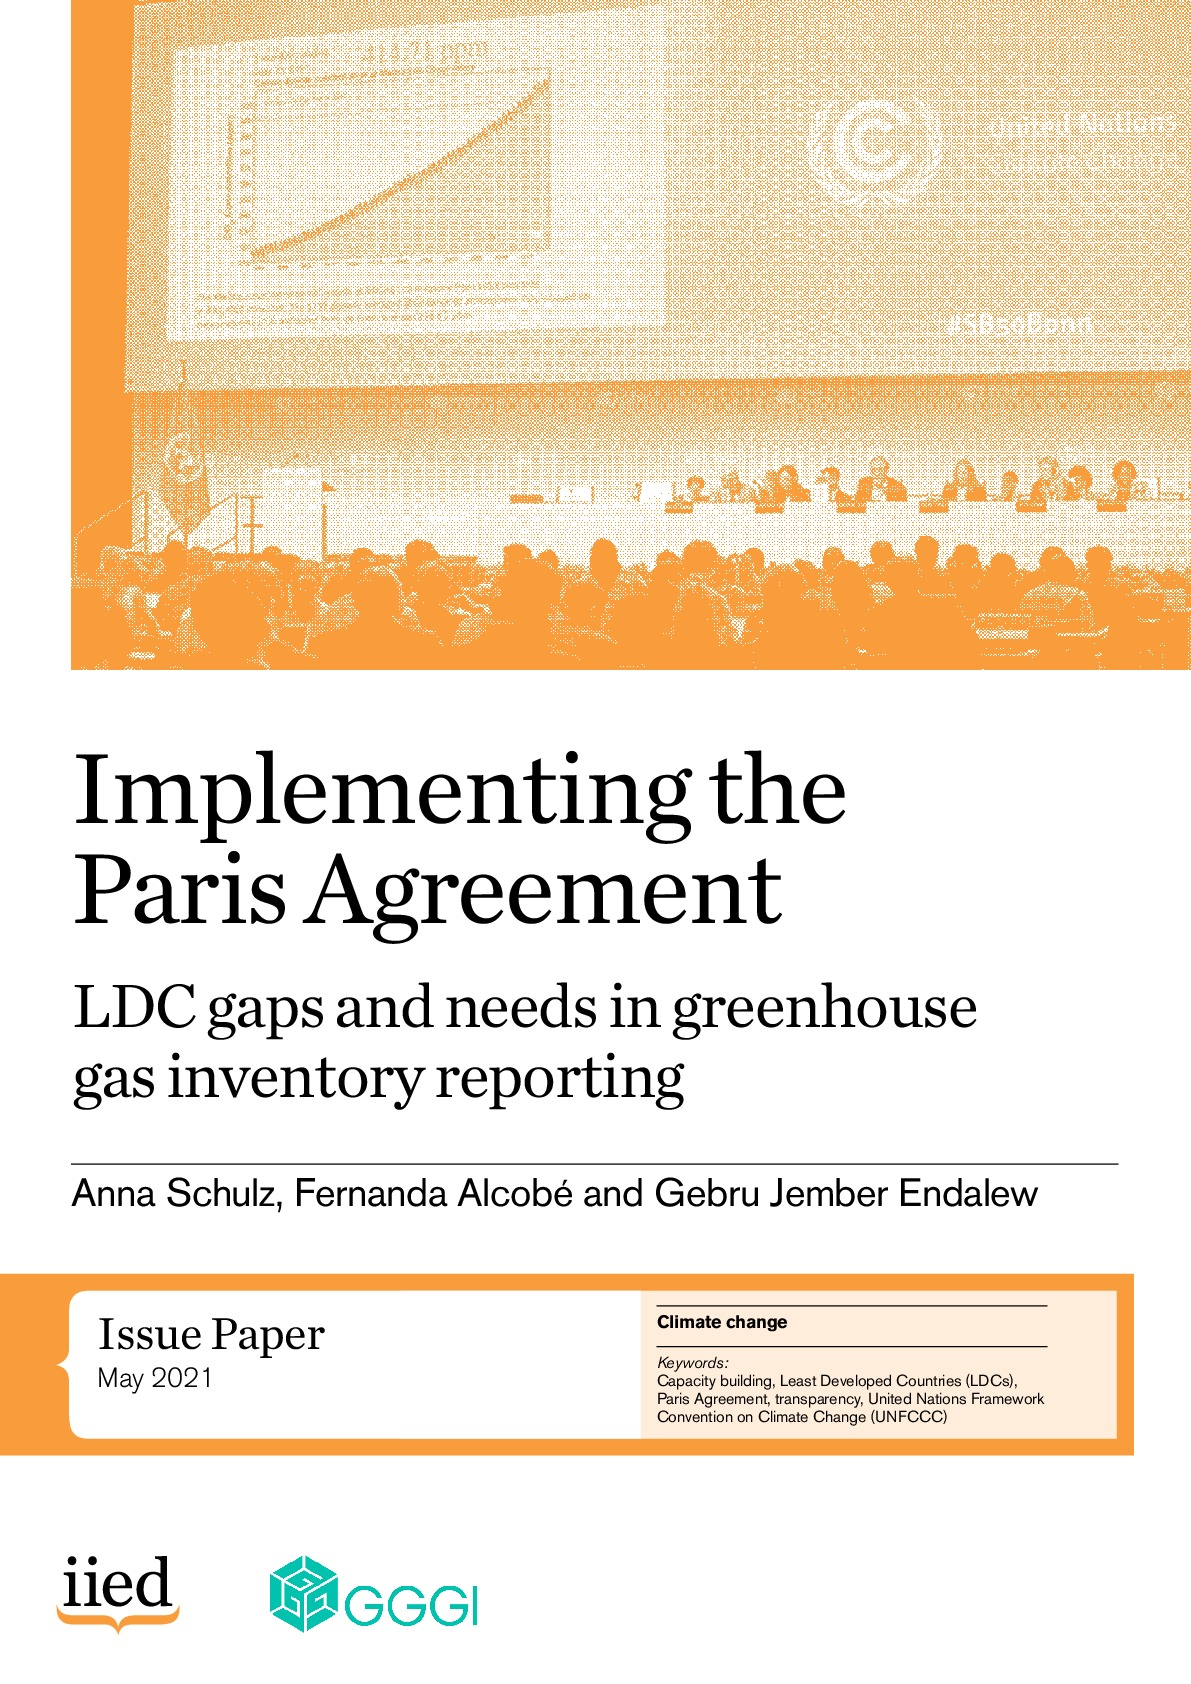 Implementing the Paris Agreement: LDC gaps and needs in greenhouse gas inventory reporting